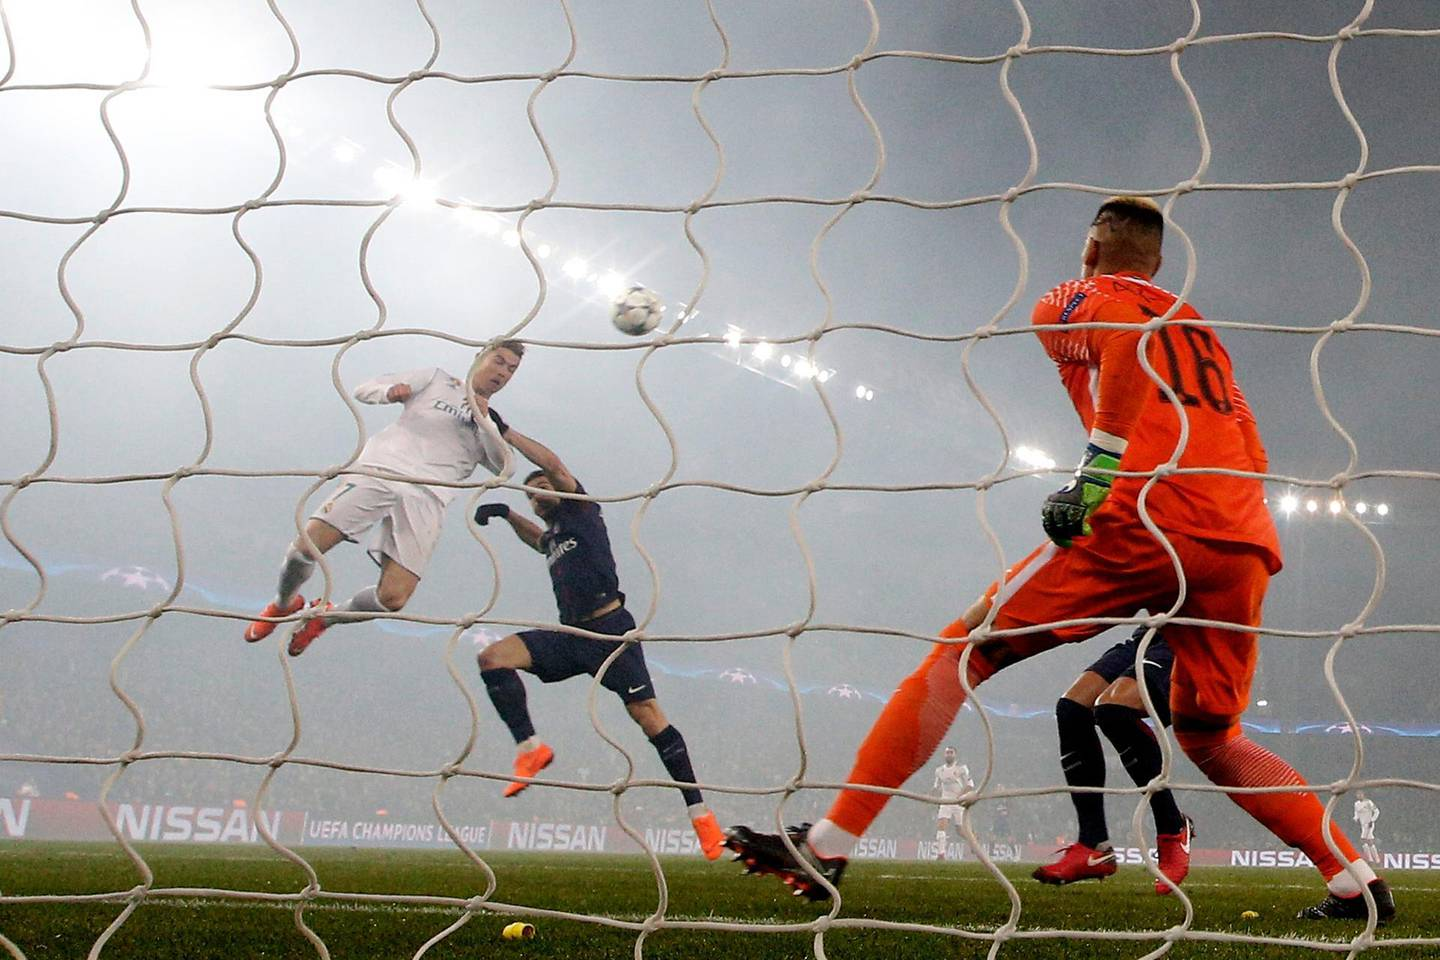 Real Madrid's Cristiano Ronaldo heads the ball to score his side's first goal passing PSG goalkeeper Alphonse Areola during the Champions League round of sixteen second leg soccer match between Paris St. Germain and Real Madrid at the Parc des Princes stadium in Paris, France, Tuesday, March 6, 2018. (AP Photo/Christophe Ena)